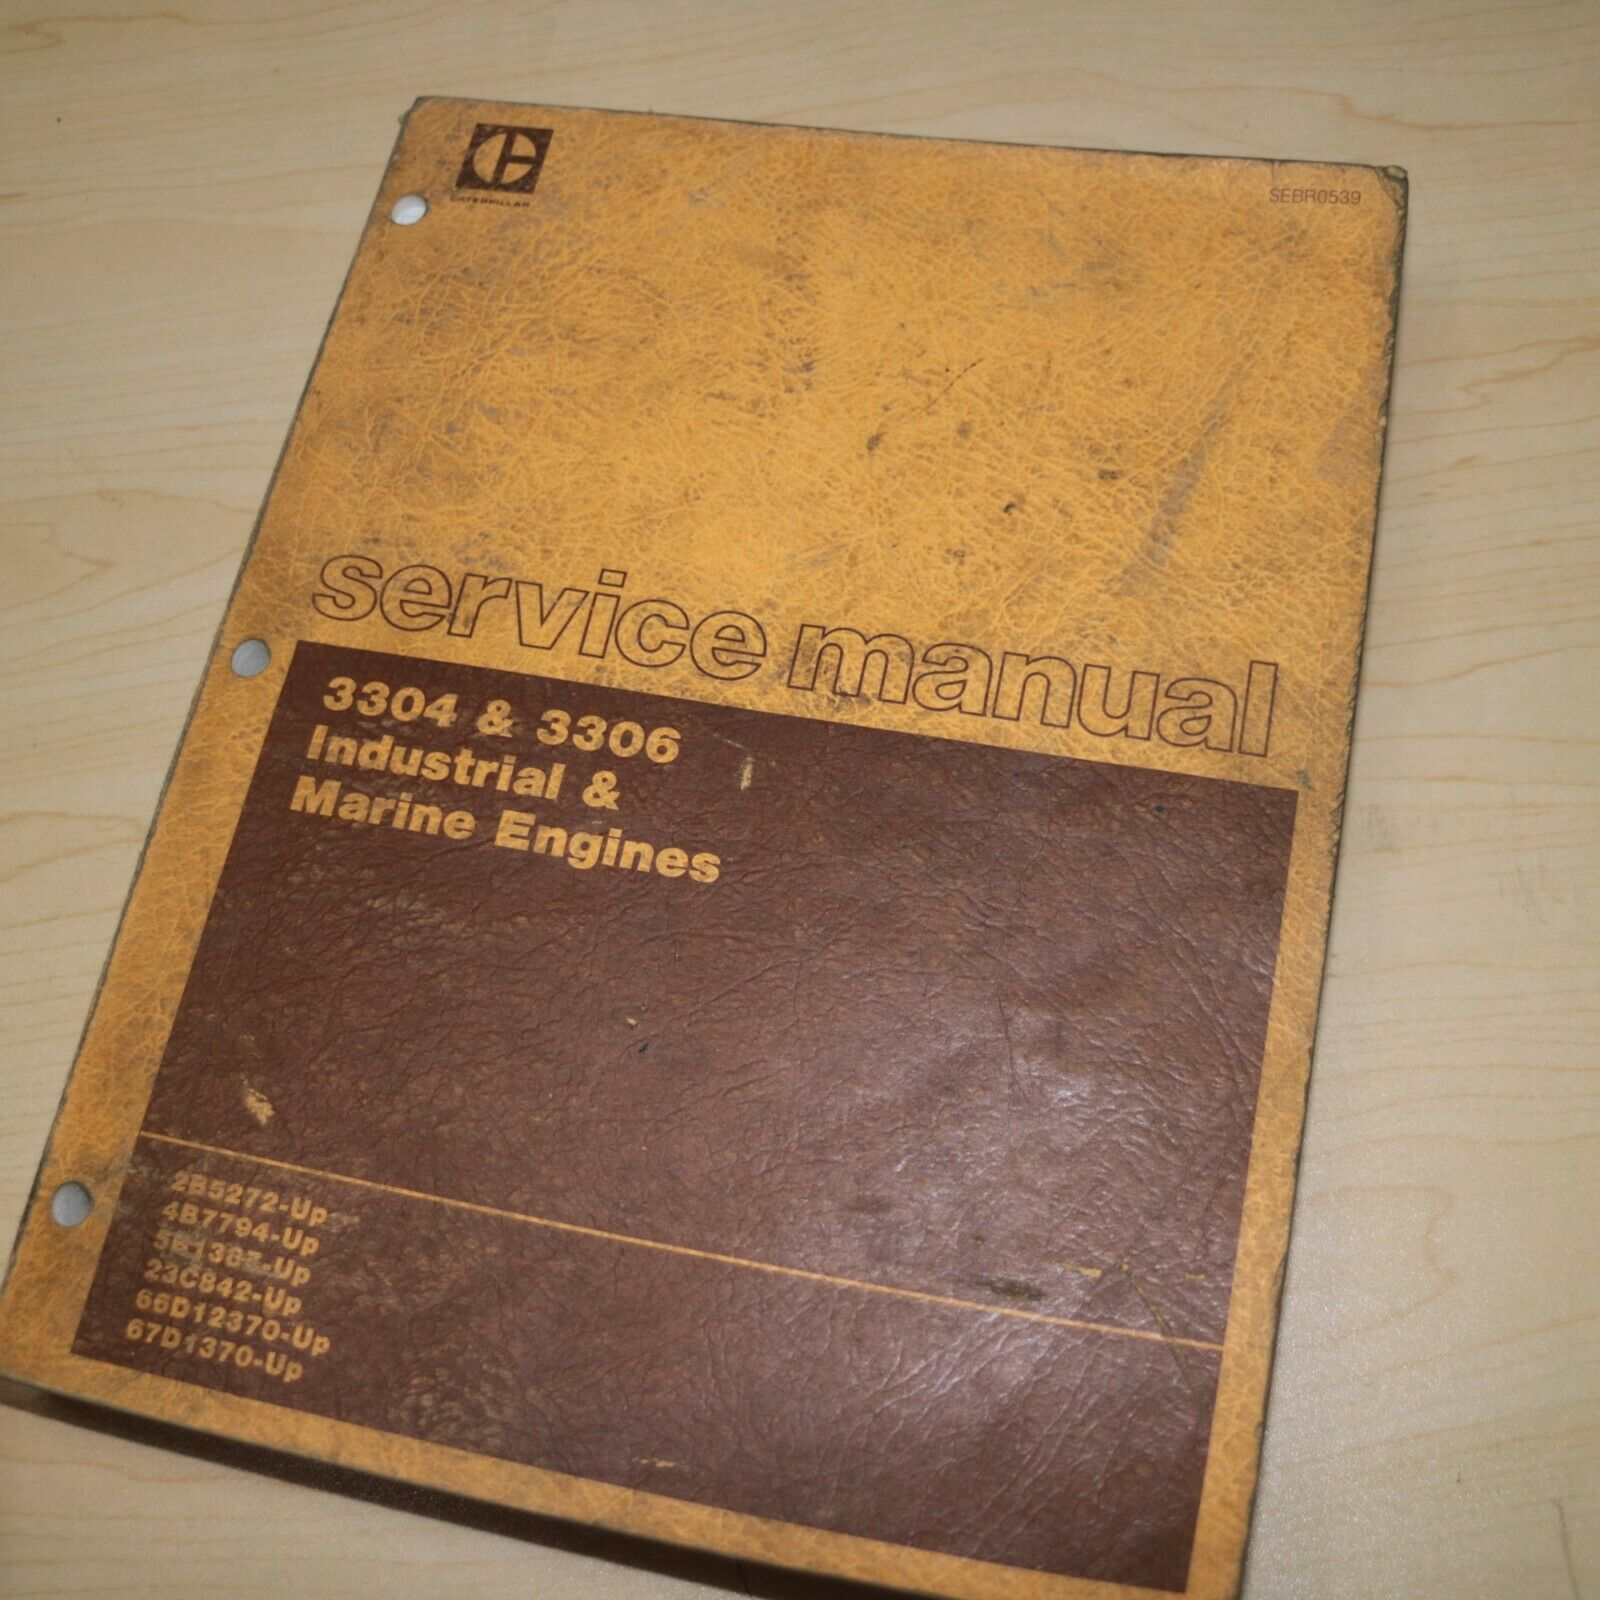 CAT Caterpillar 3304 3306 Marine Engine Repair Shop Service Manual overhaul  book 1 of 7Only 2 available ...